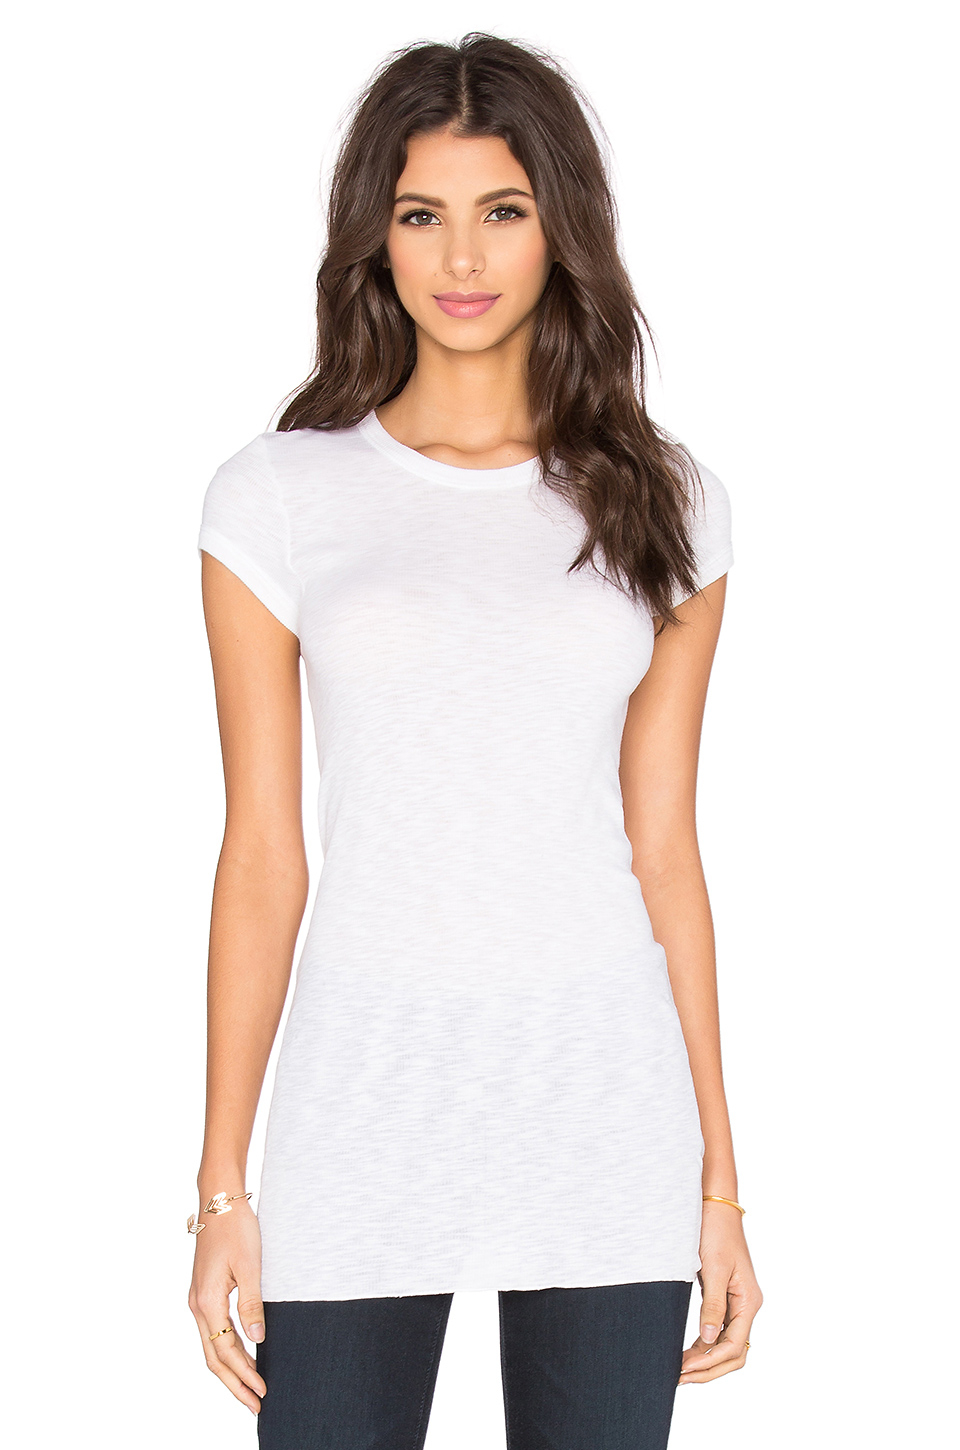 Lyst - Enza Costa Rib Fitted Cap Sleeve Top in White